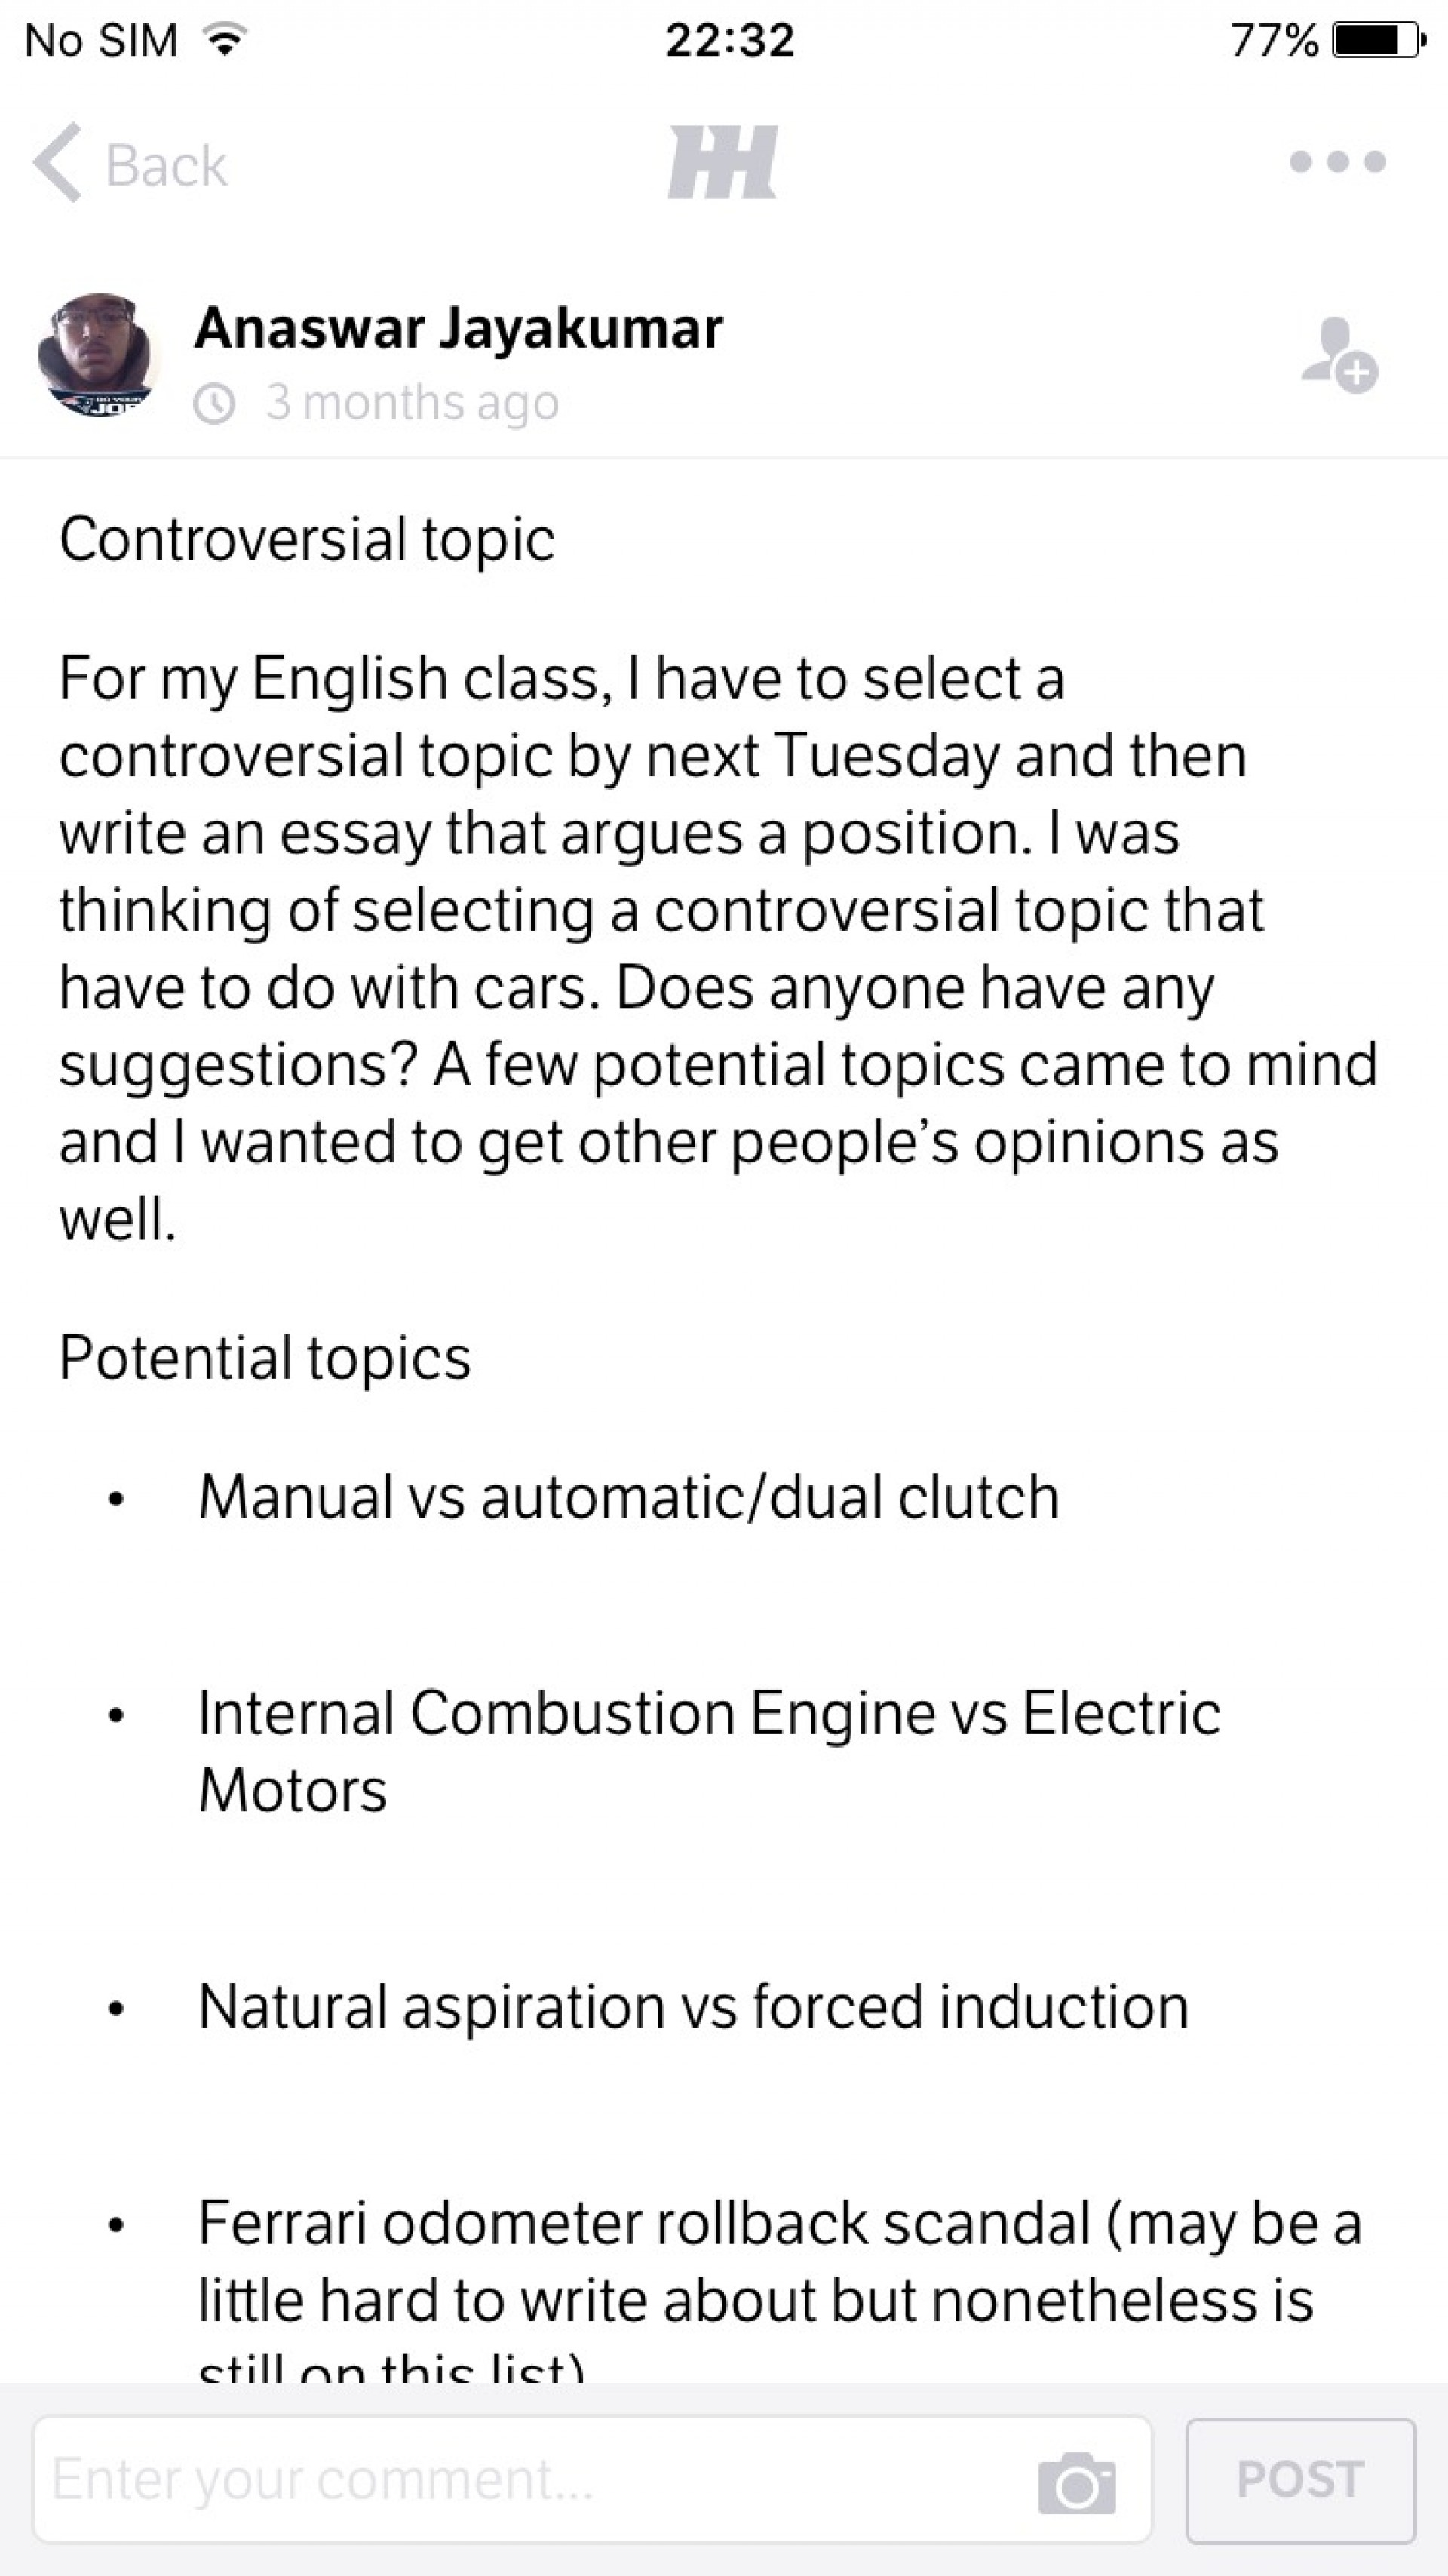 017 Controversial Topic Essay Topics Example Research Paper Outline Phenomenal Writing A Middle School Mla Style On Obesity 1920